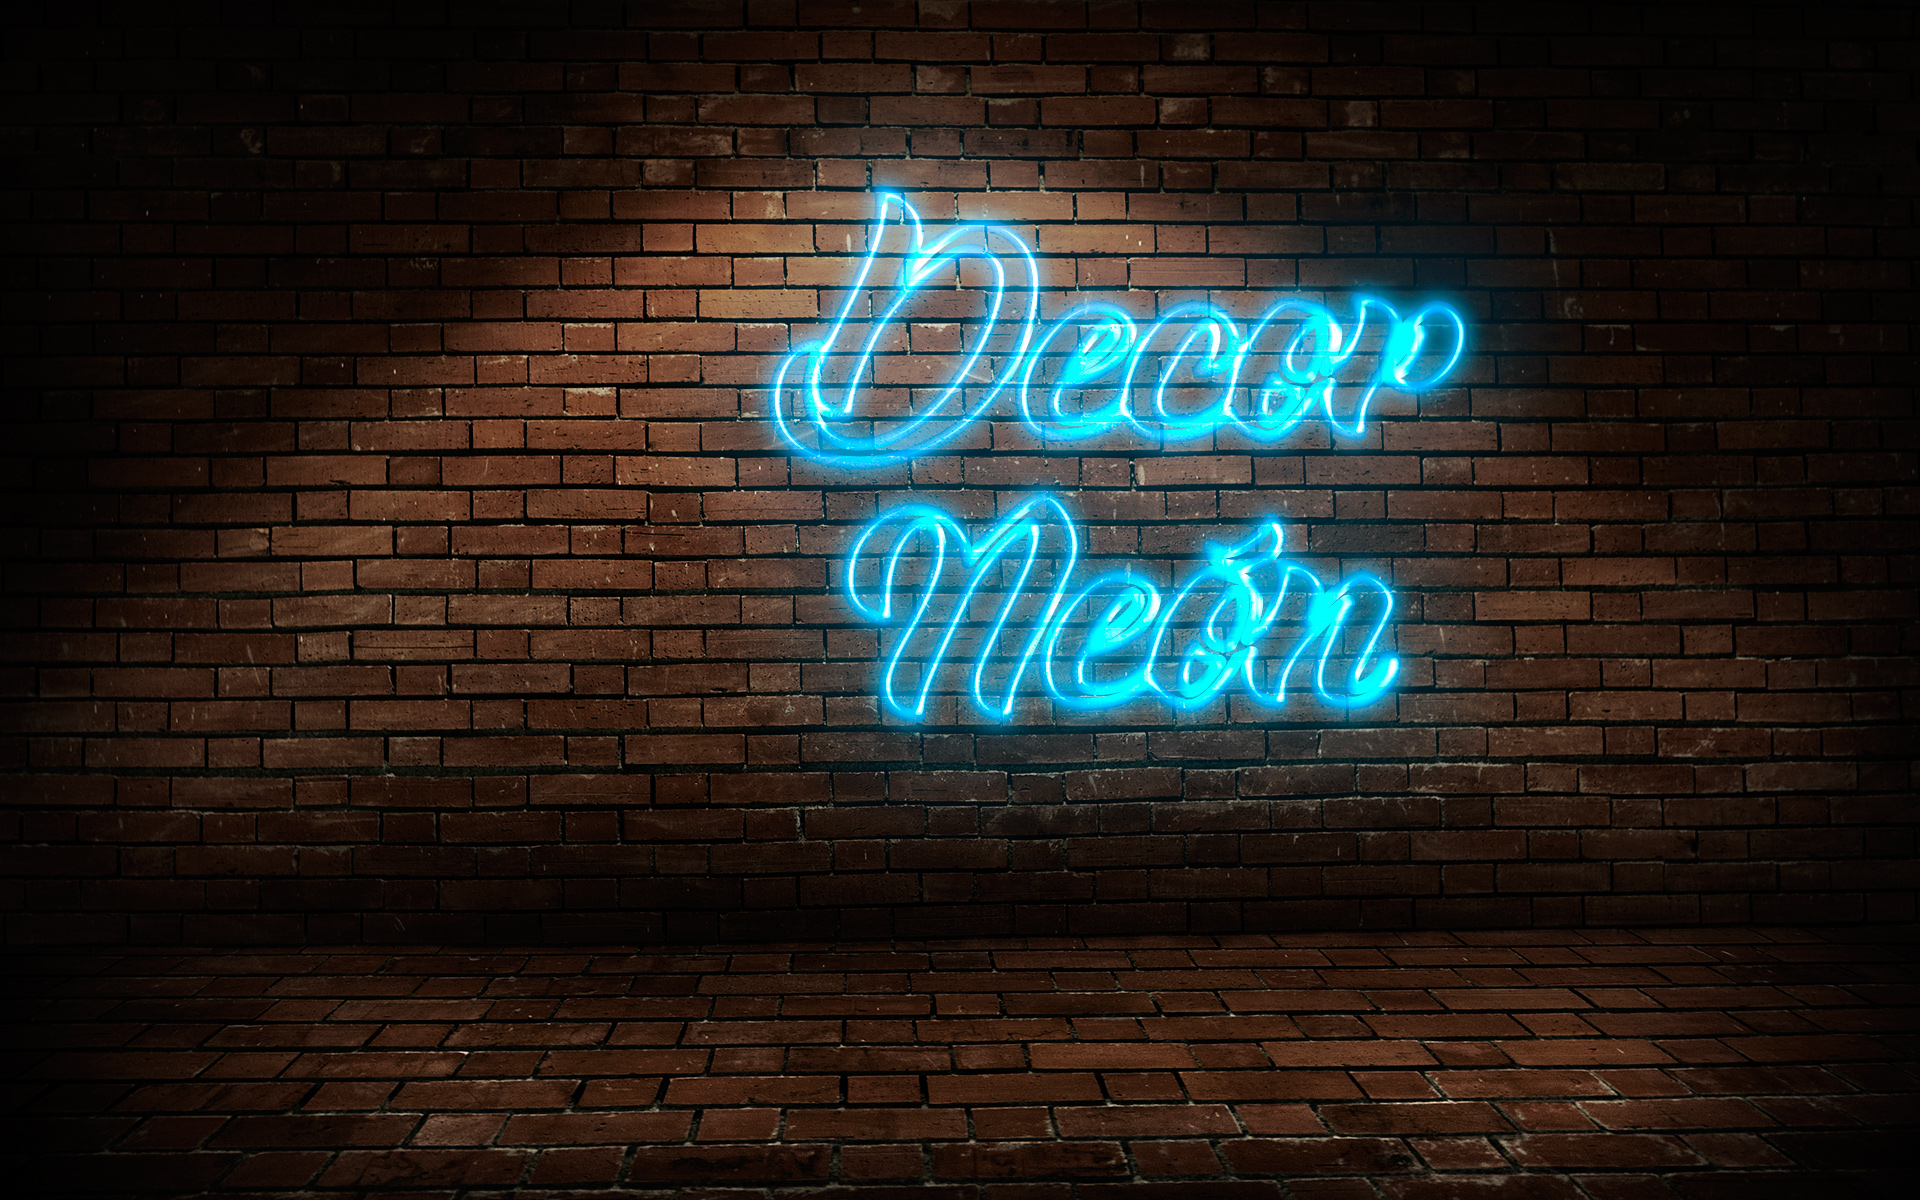 Wallpaper DecorNeon